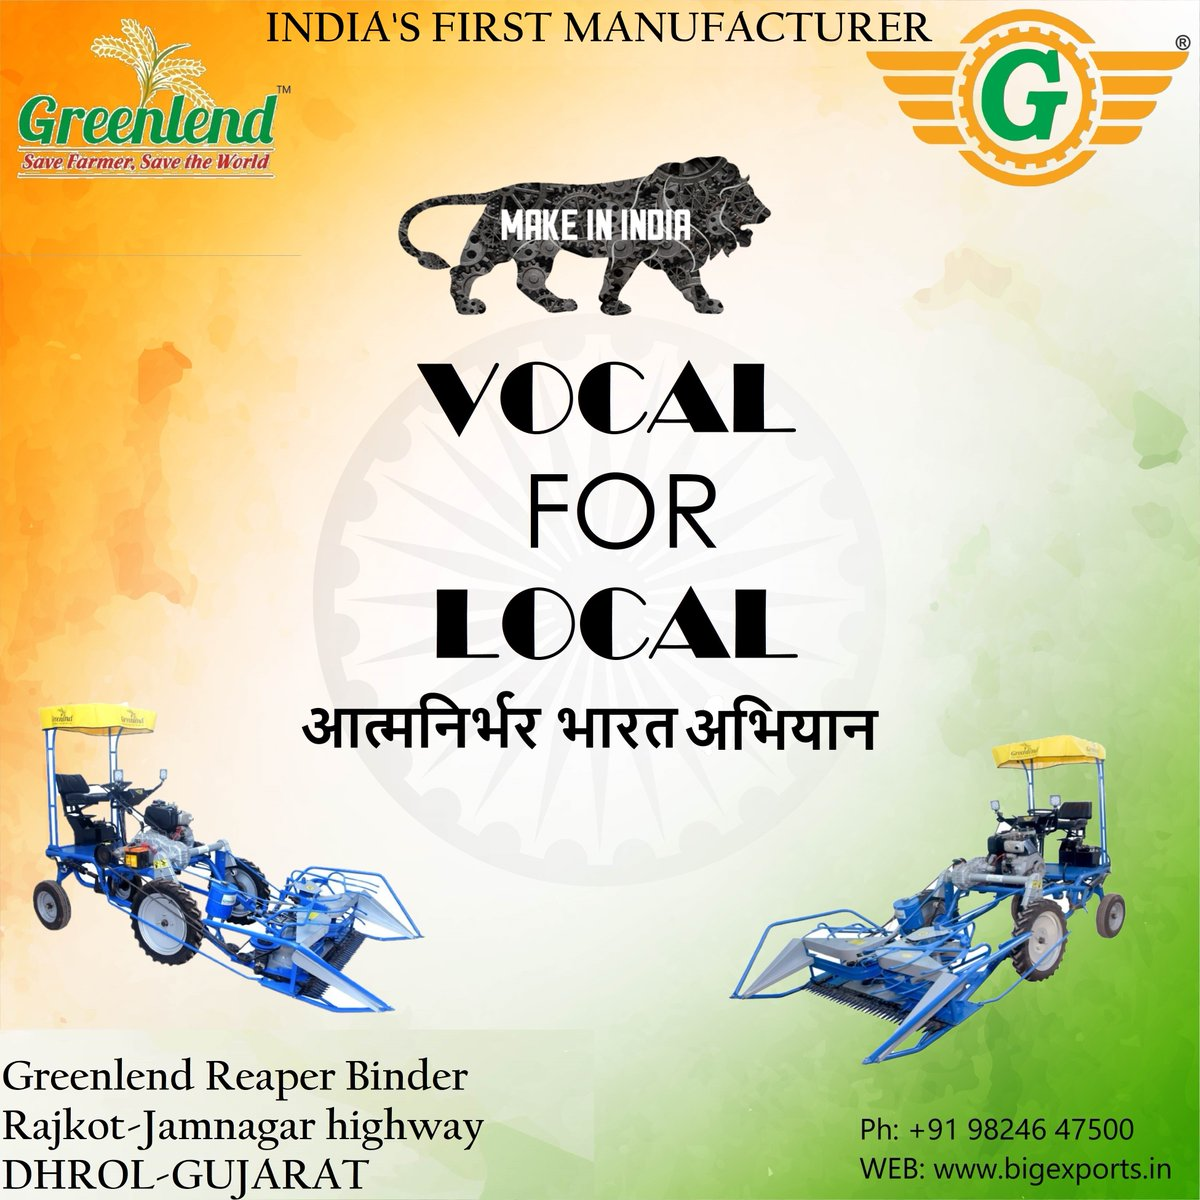 For an Independent India, we need to support our local businesses. We are proud to be a Make in India brand and contributing to PM's vocal for local campaign. #VocalForLocal #PMModi #IndianPrimeMinister #Modi #LocalBusinesses #MakeInIndia #MadeInIndia #Growth #Indian #Indiapic.twitter.com/pZfjmMNMsW